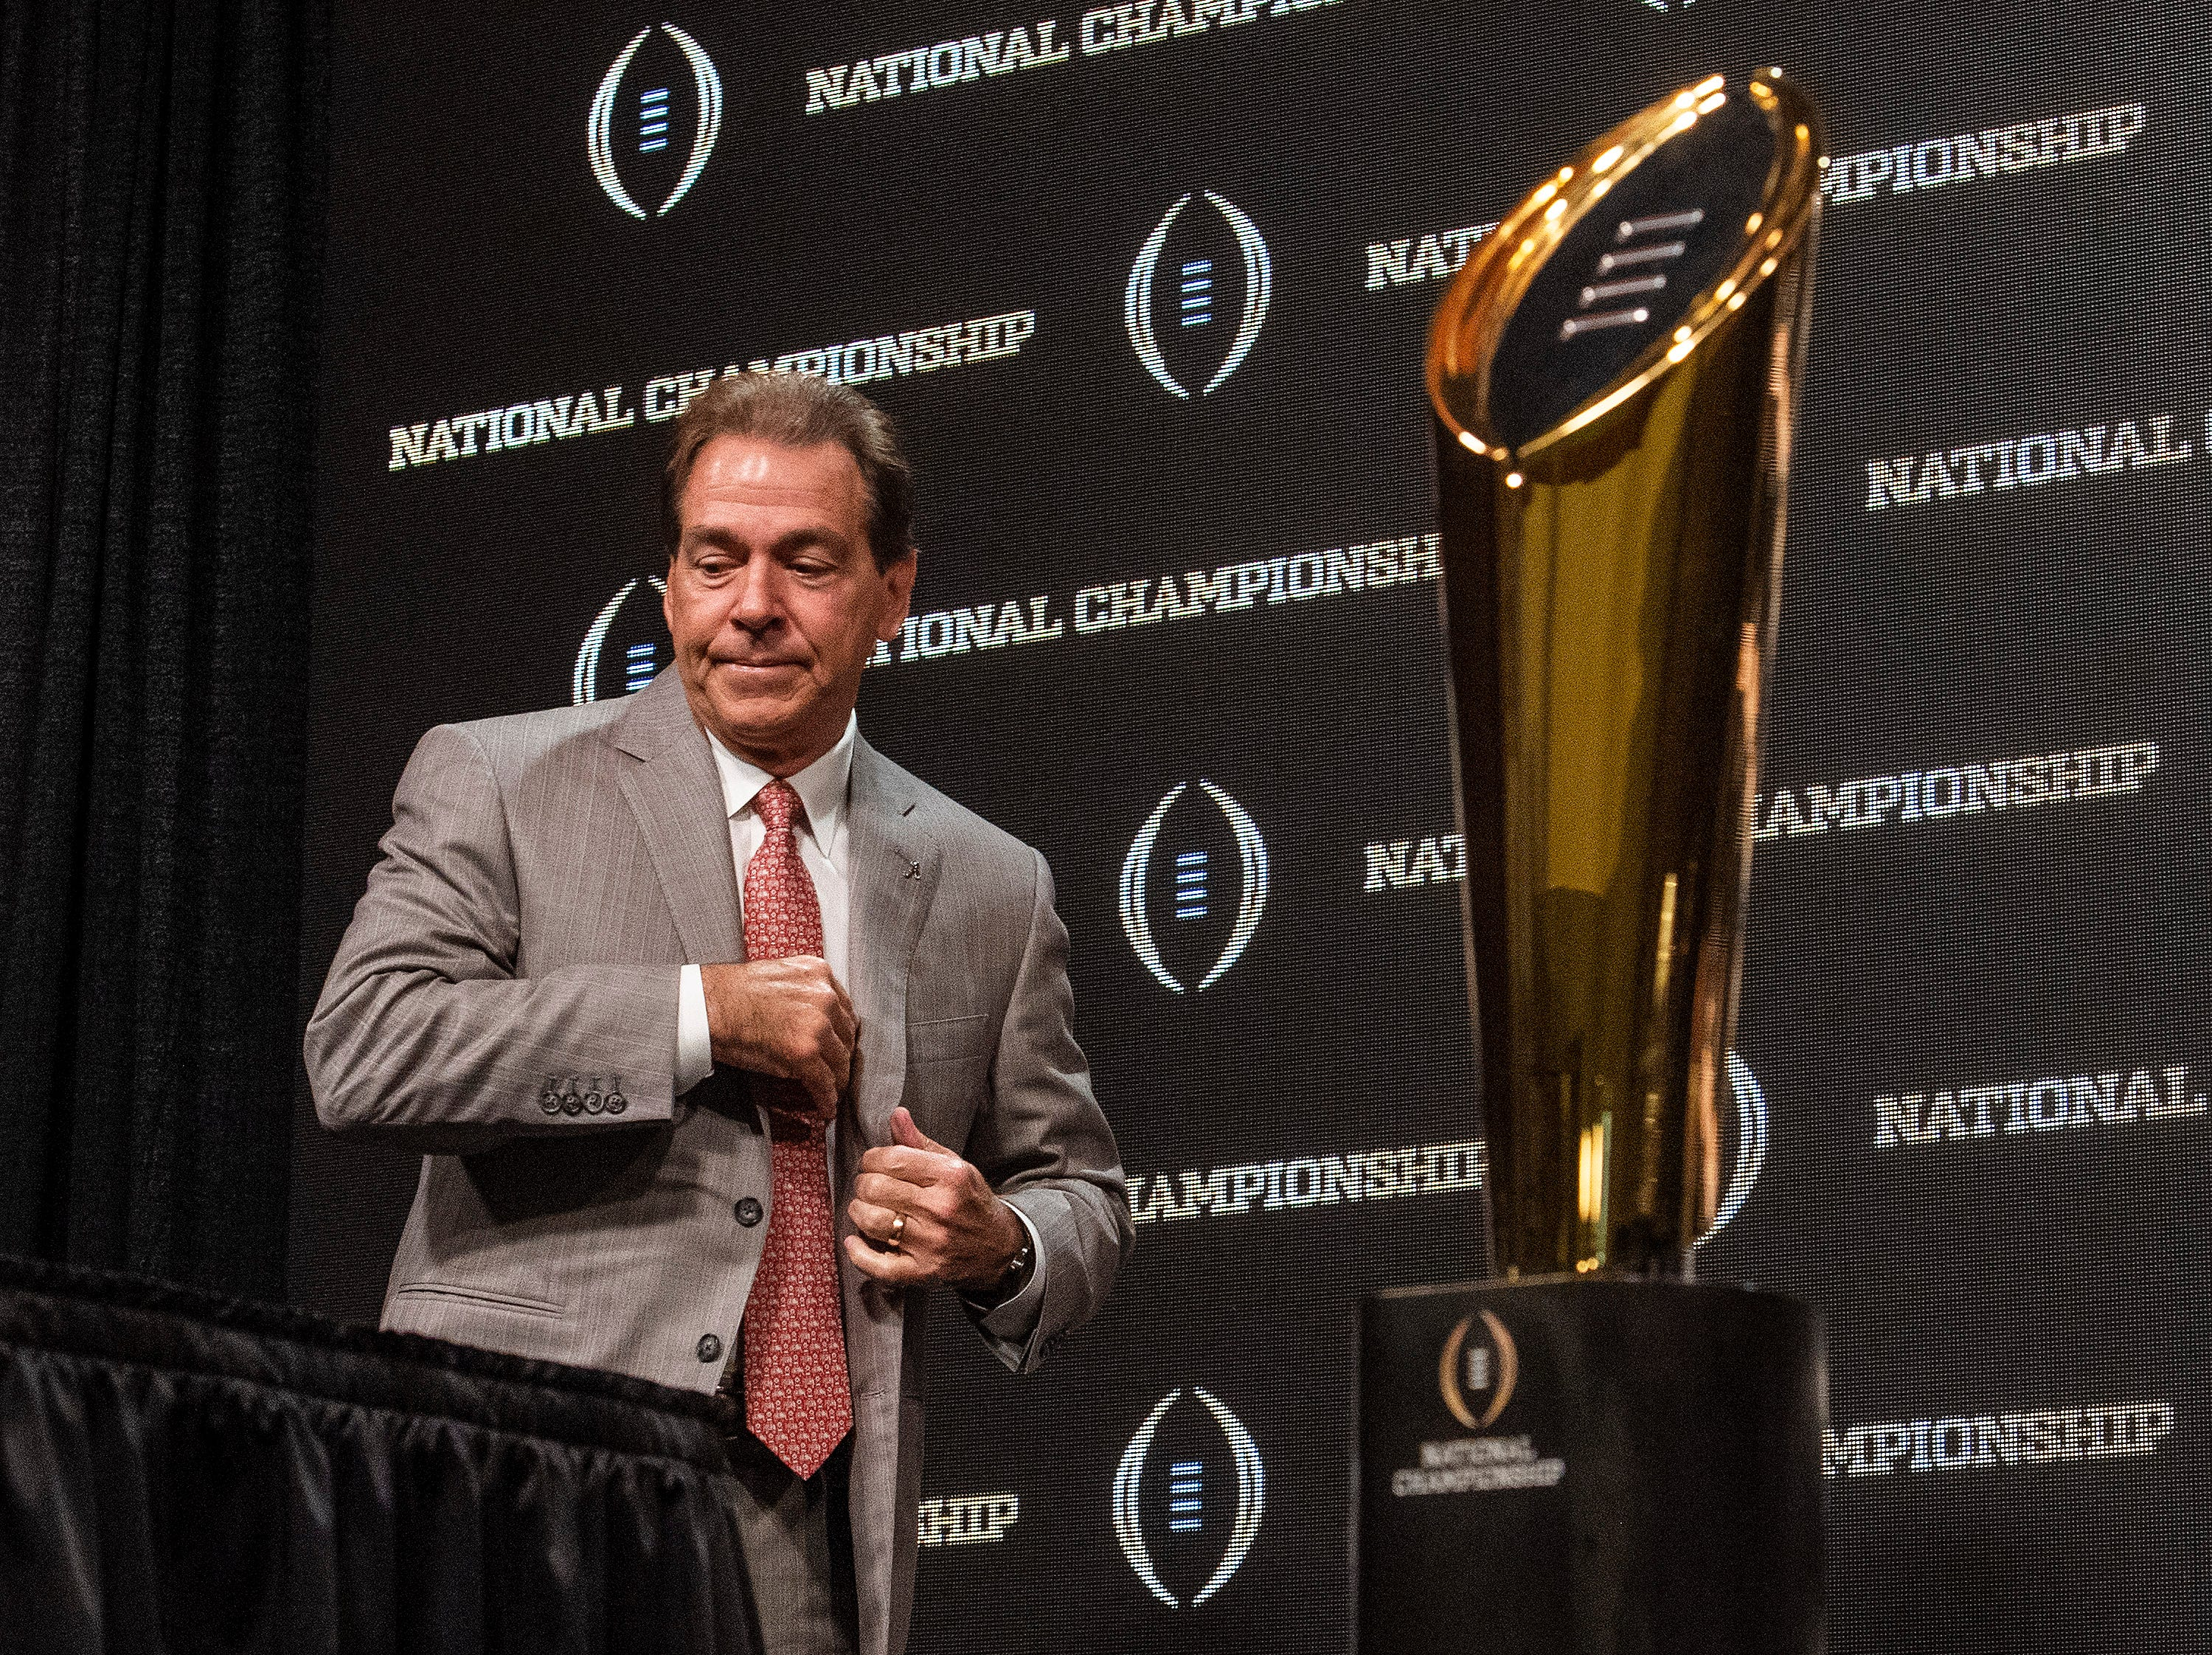 Alabama head coach Nick Saban arrives for the College Football National Championship coaches press conference in San Jose, Ca., on Sunday January 6, 2019.